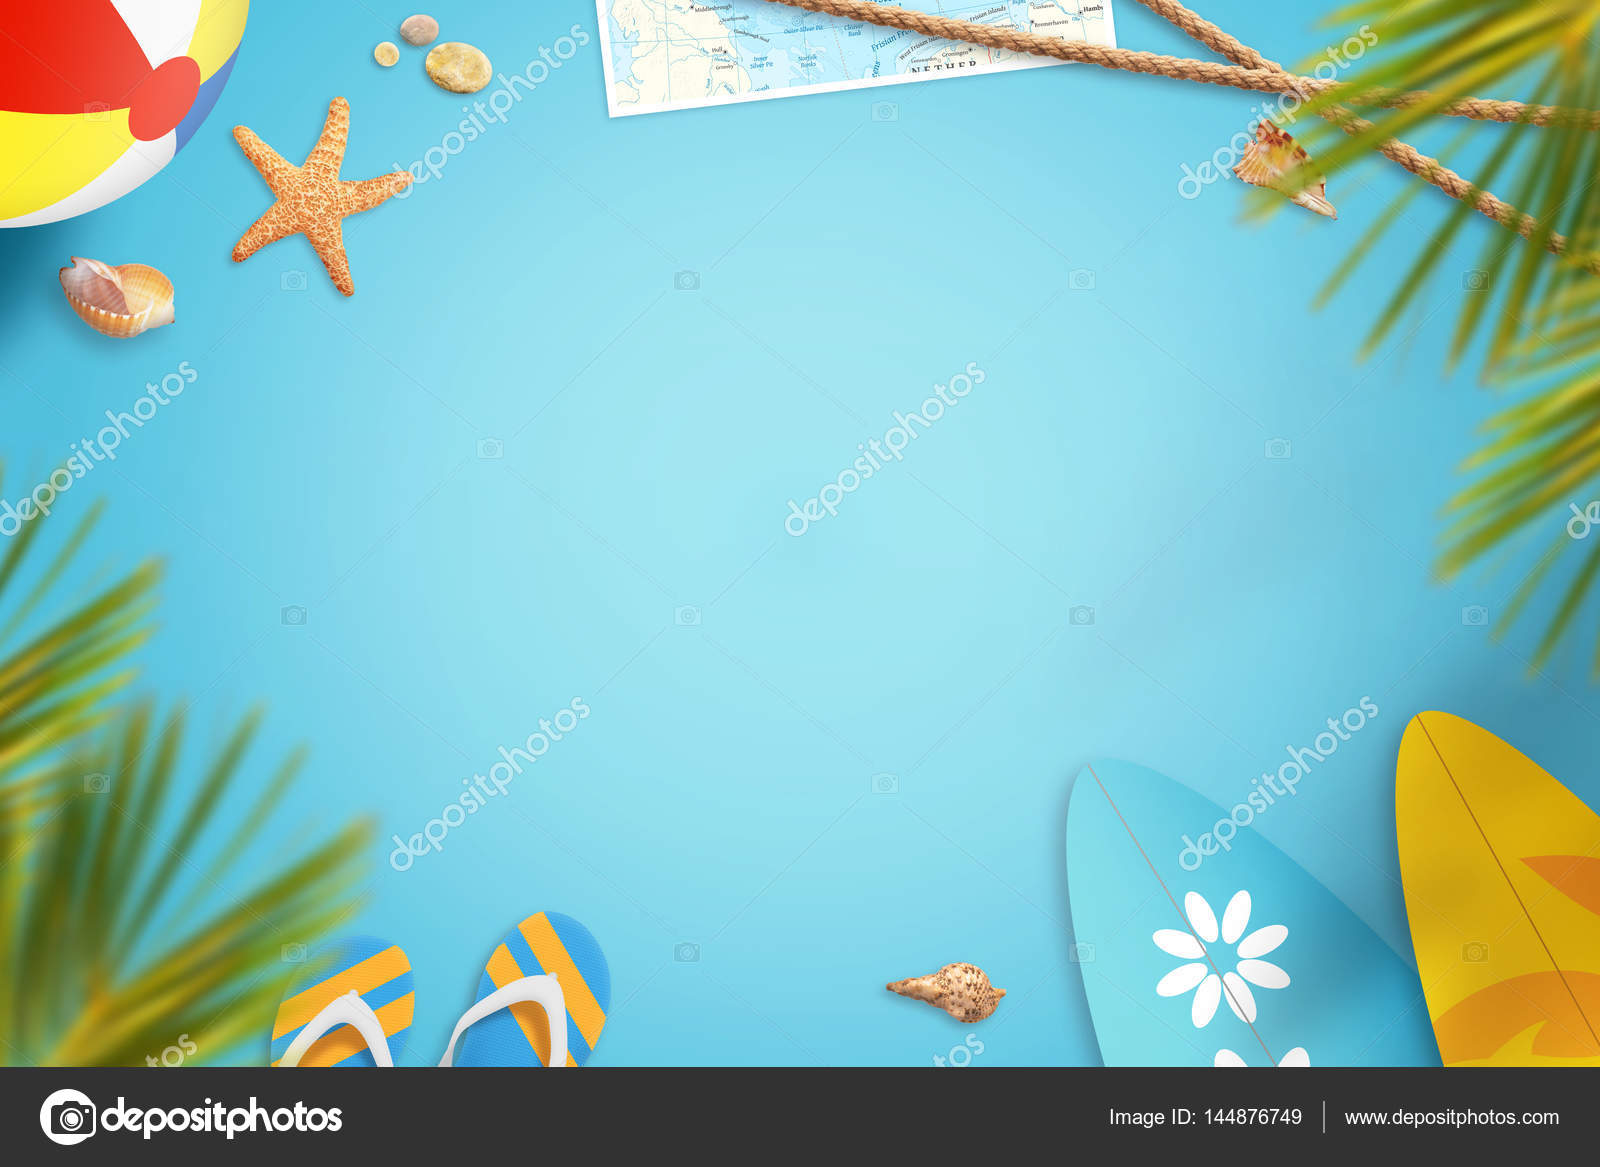 Summer Beach Vacation Travel Background Image With Free Space For Text Items For Entertainment At Beach In The Shade Of Palm Trees Stock Photo C Vlado85 144876749